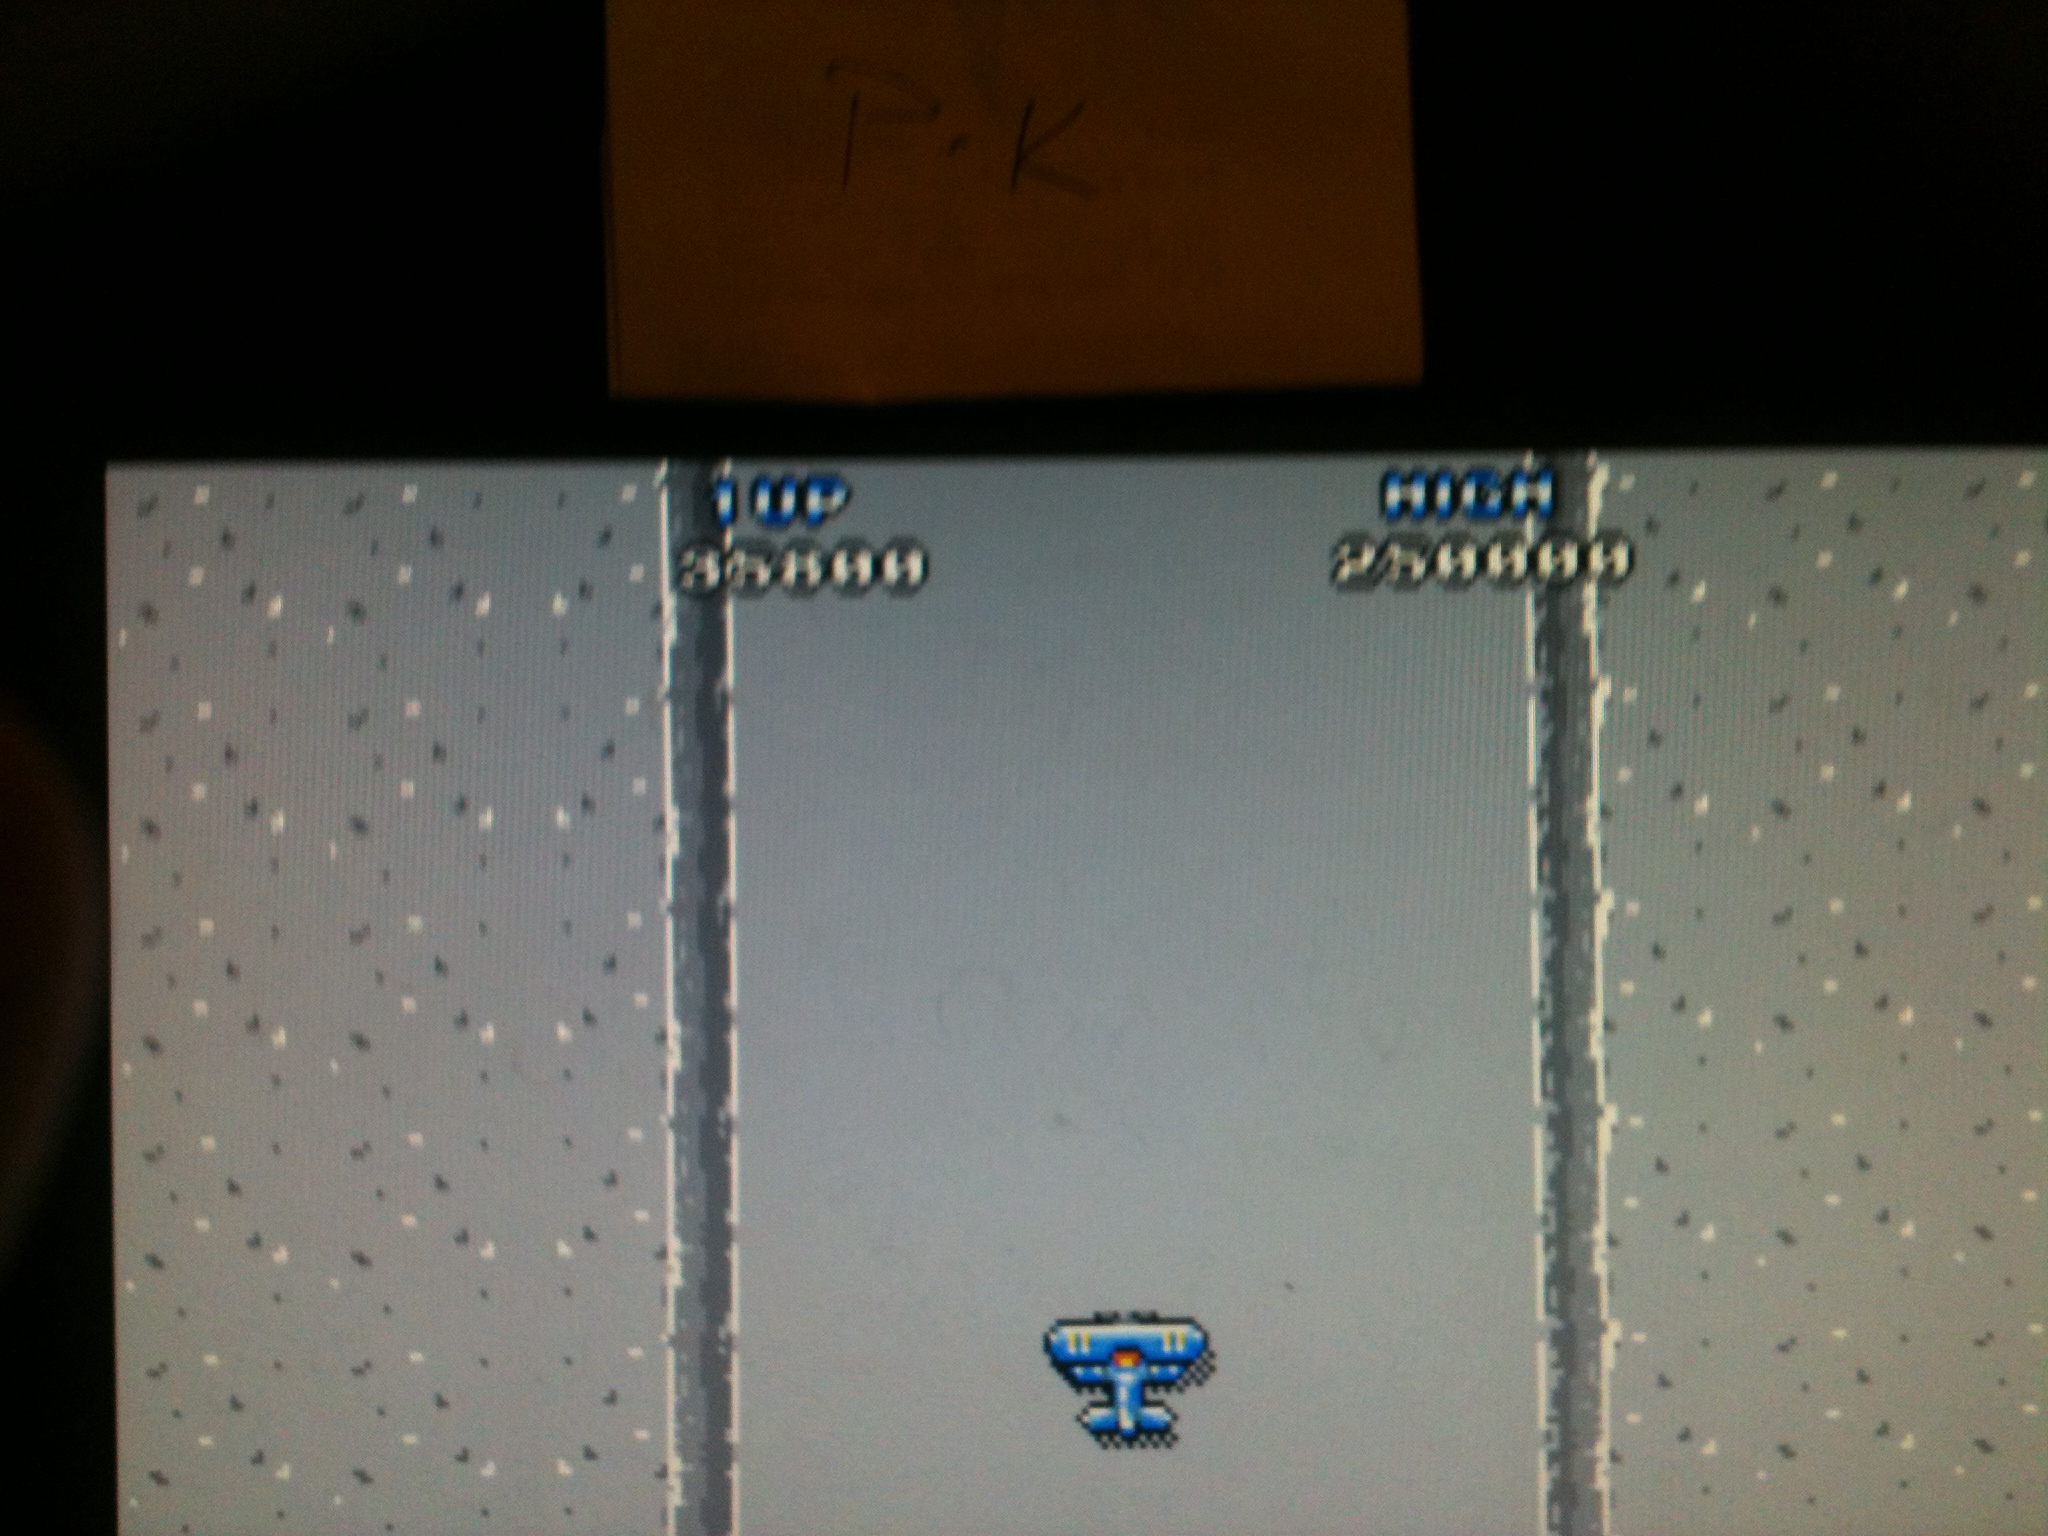 kernzy: Flying Shark (Atari ST Emulated) 35,800 points on 2015-02-02 09:06:35